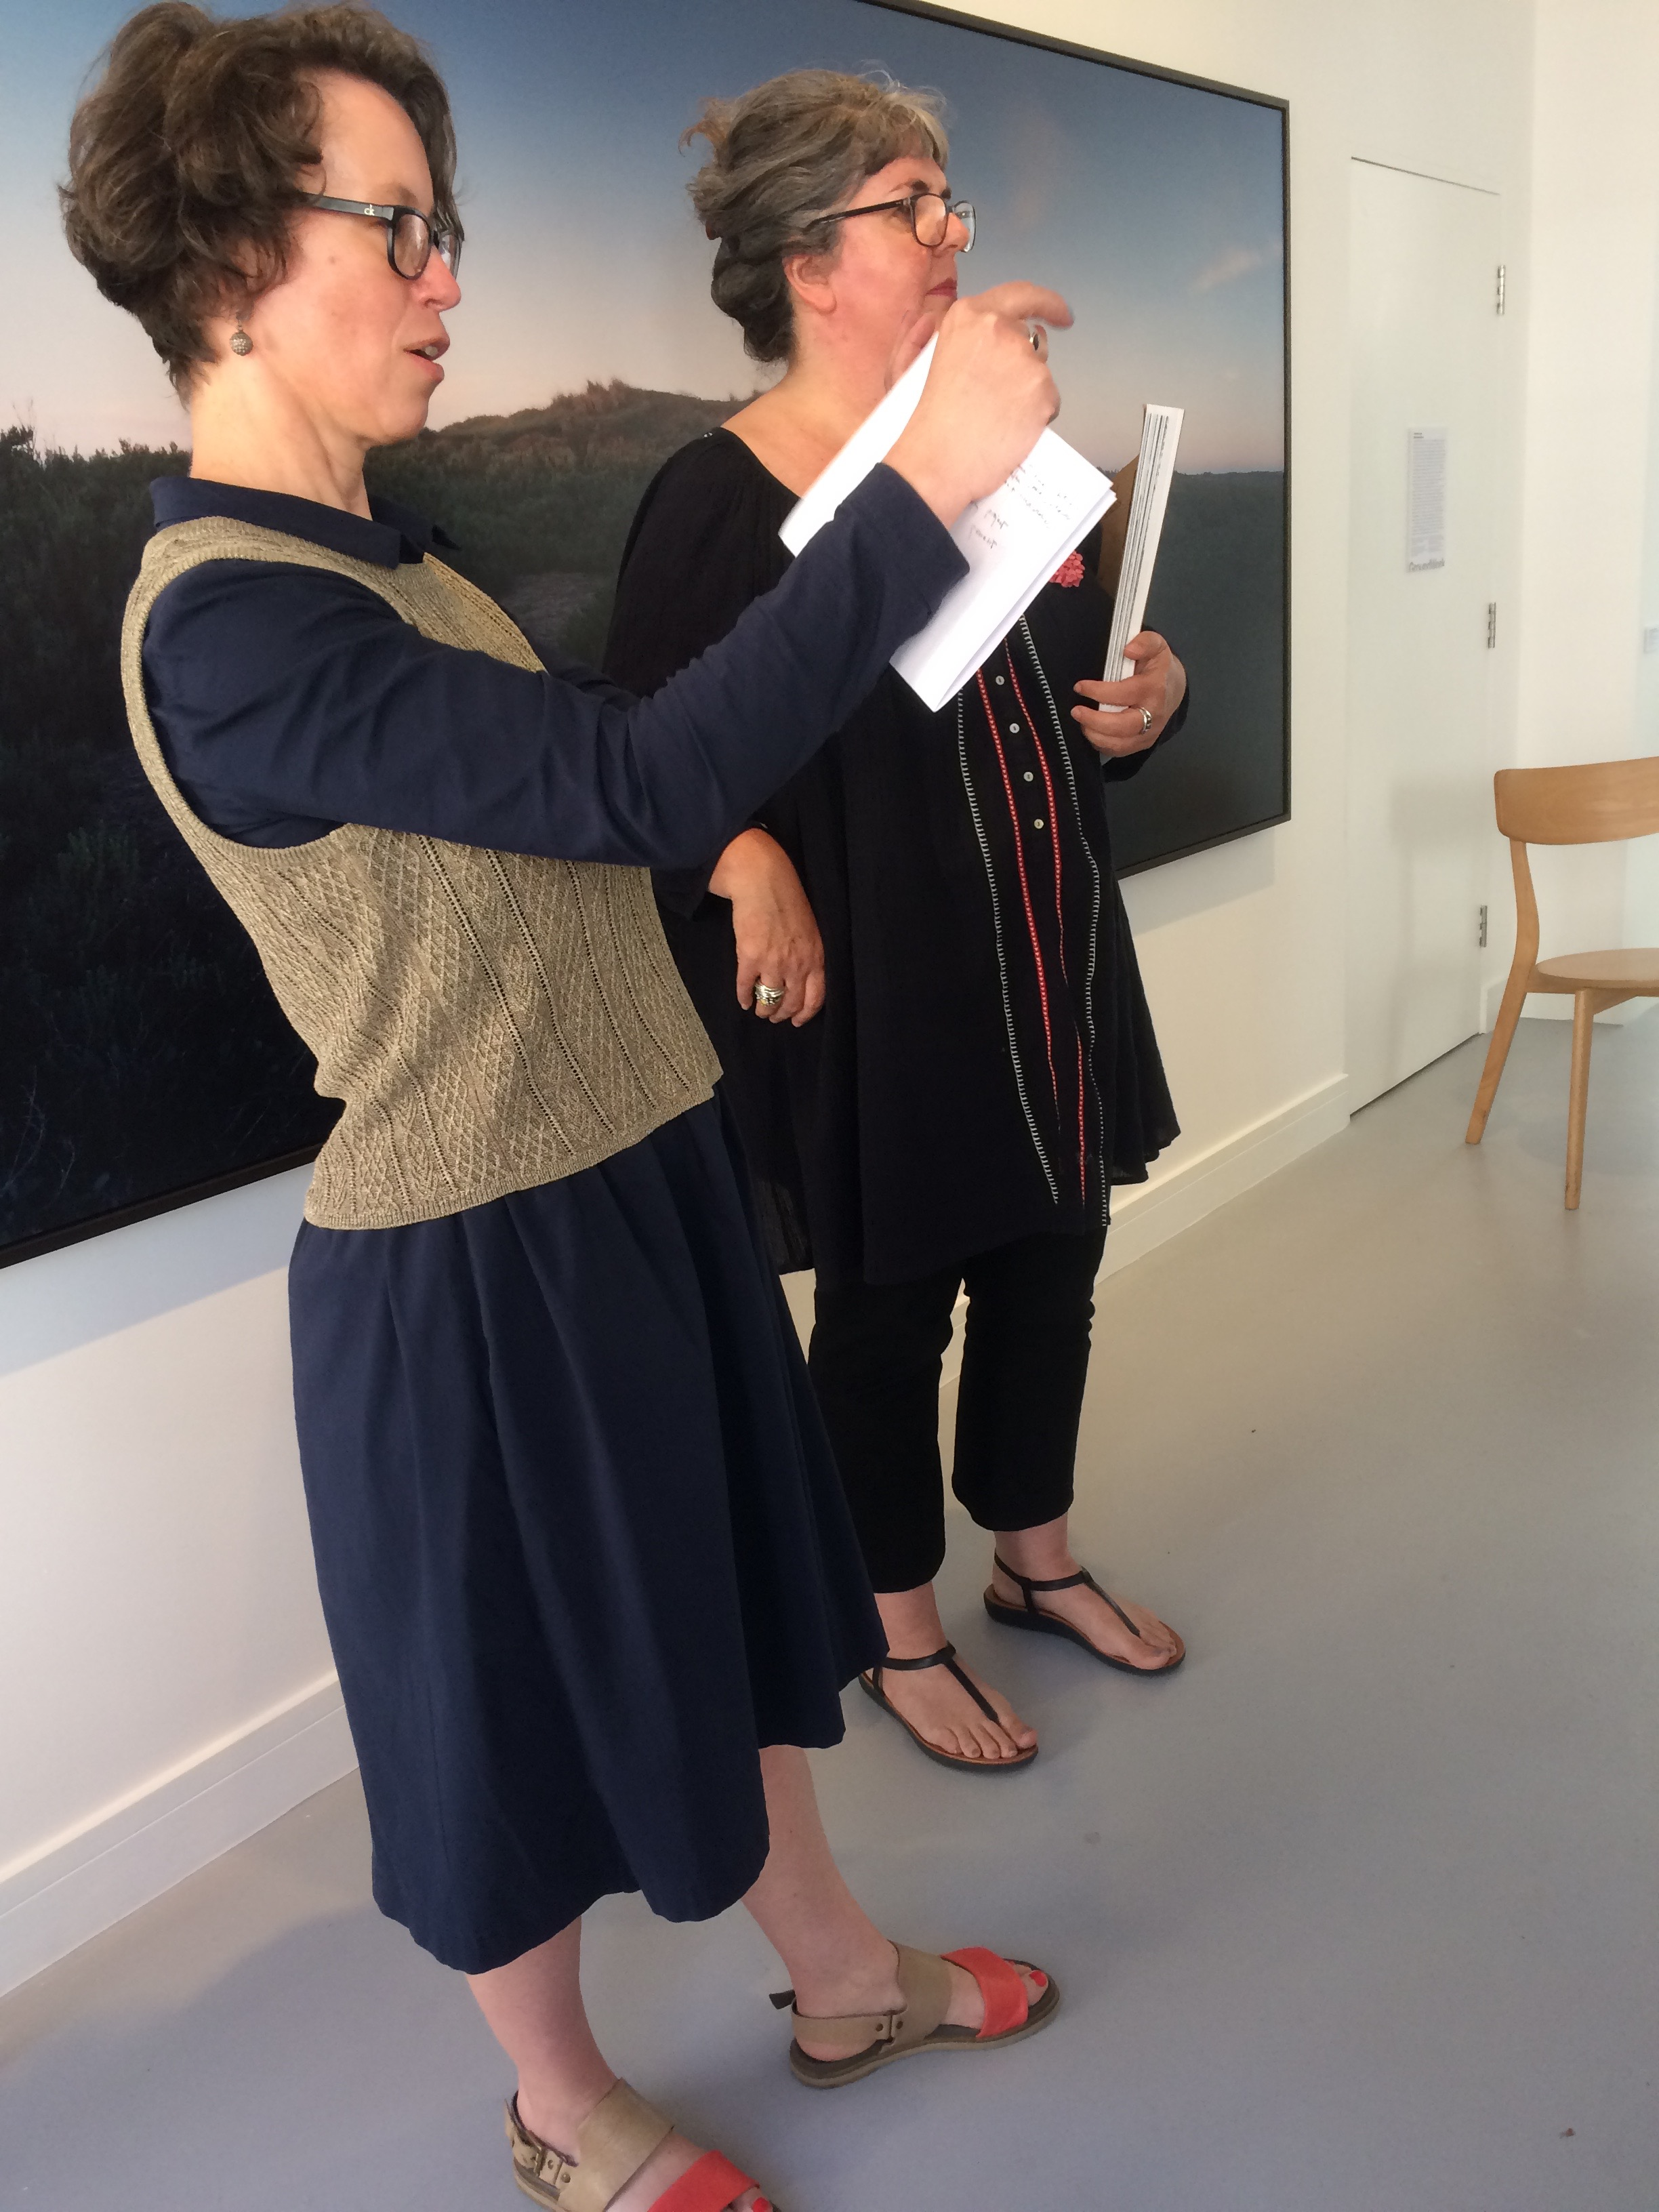 Bergit Arends, who co-commissioned the original exhibition project, and Chrystel Lebas talking at GroundWork Gallery on 24th June